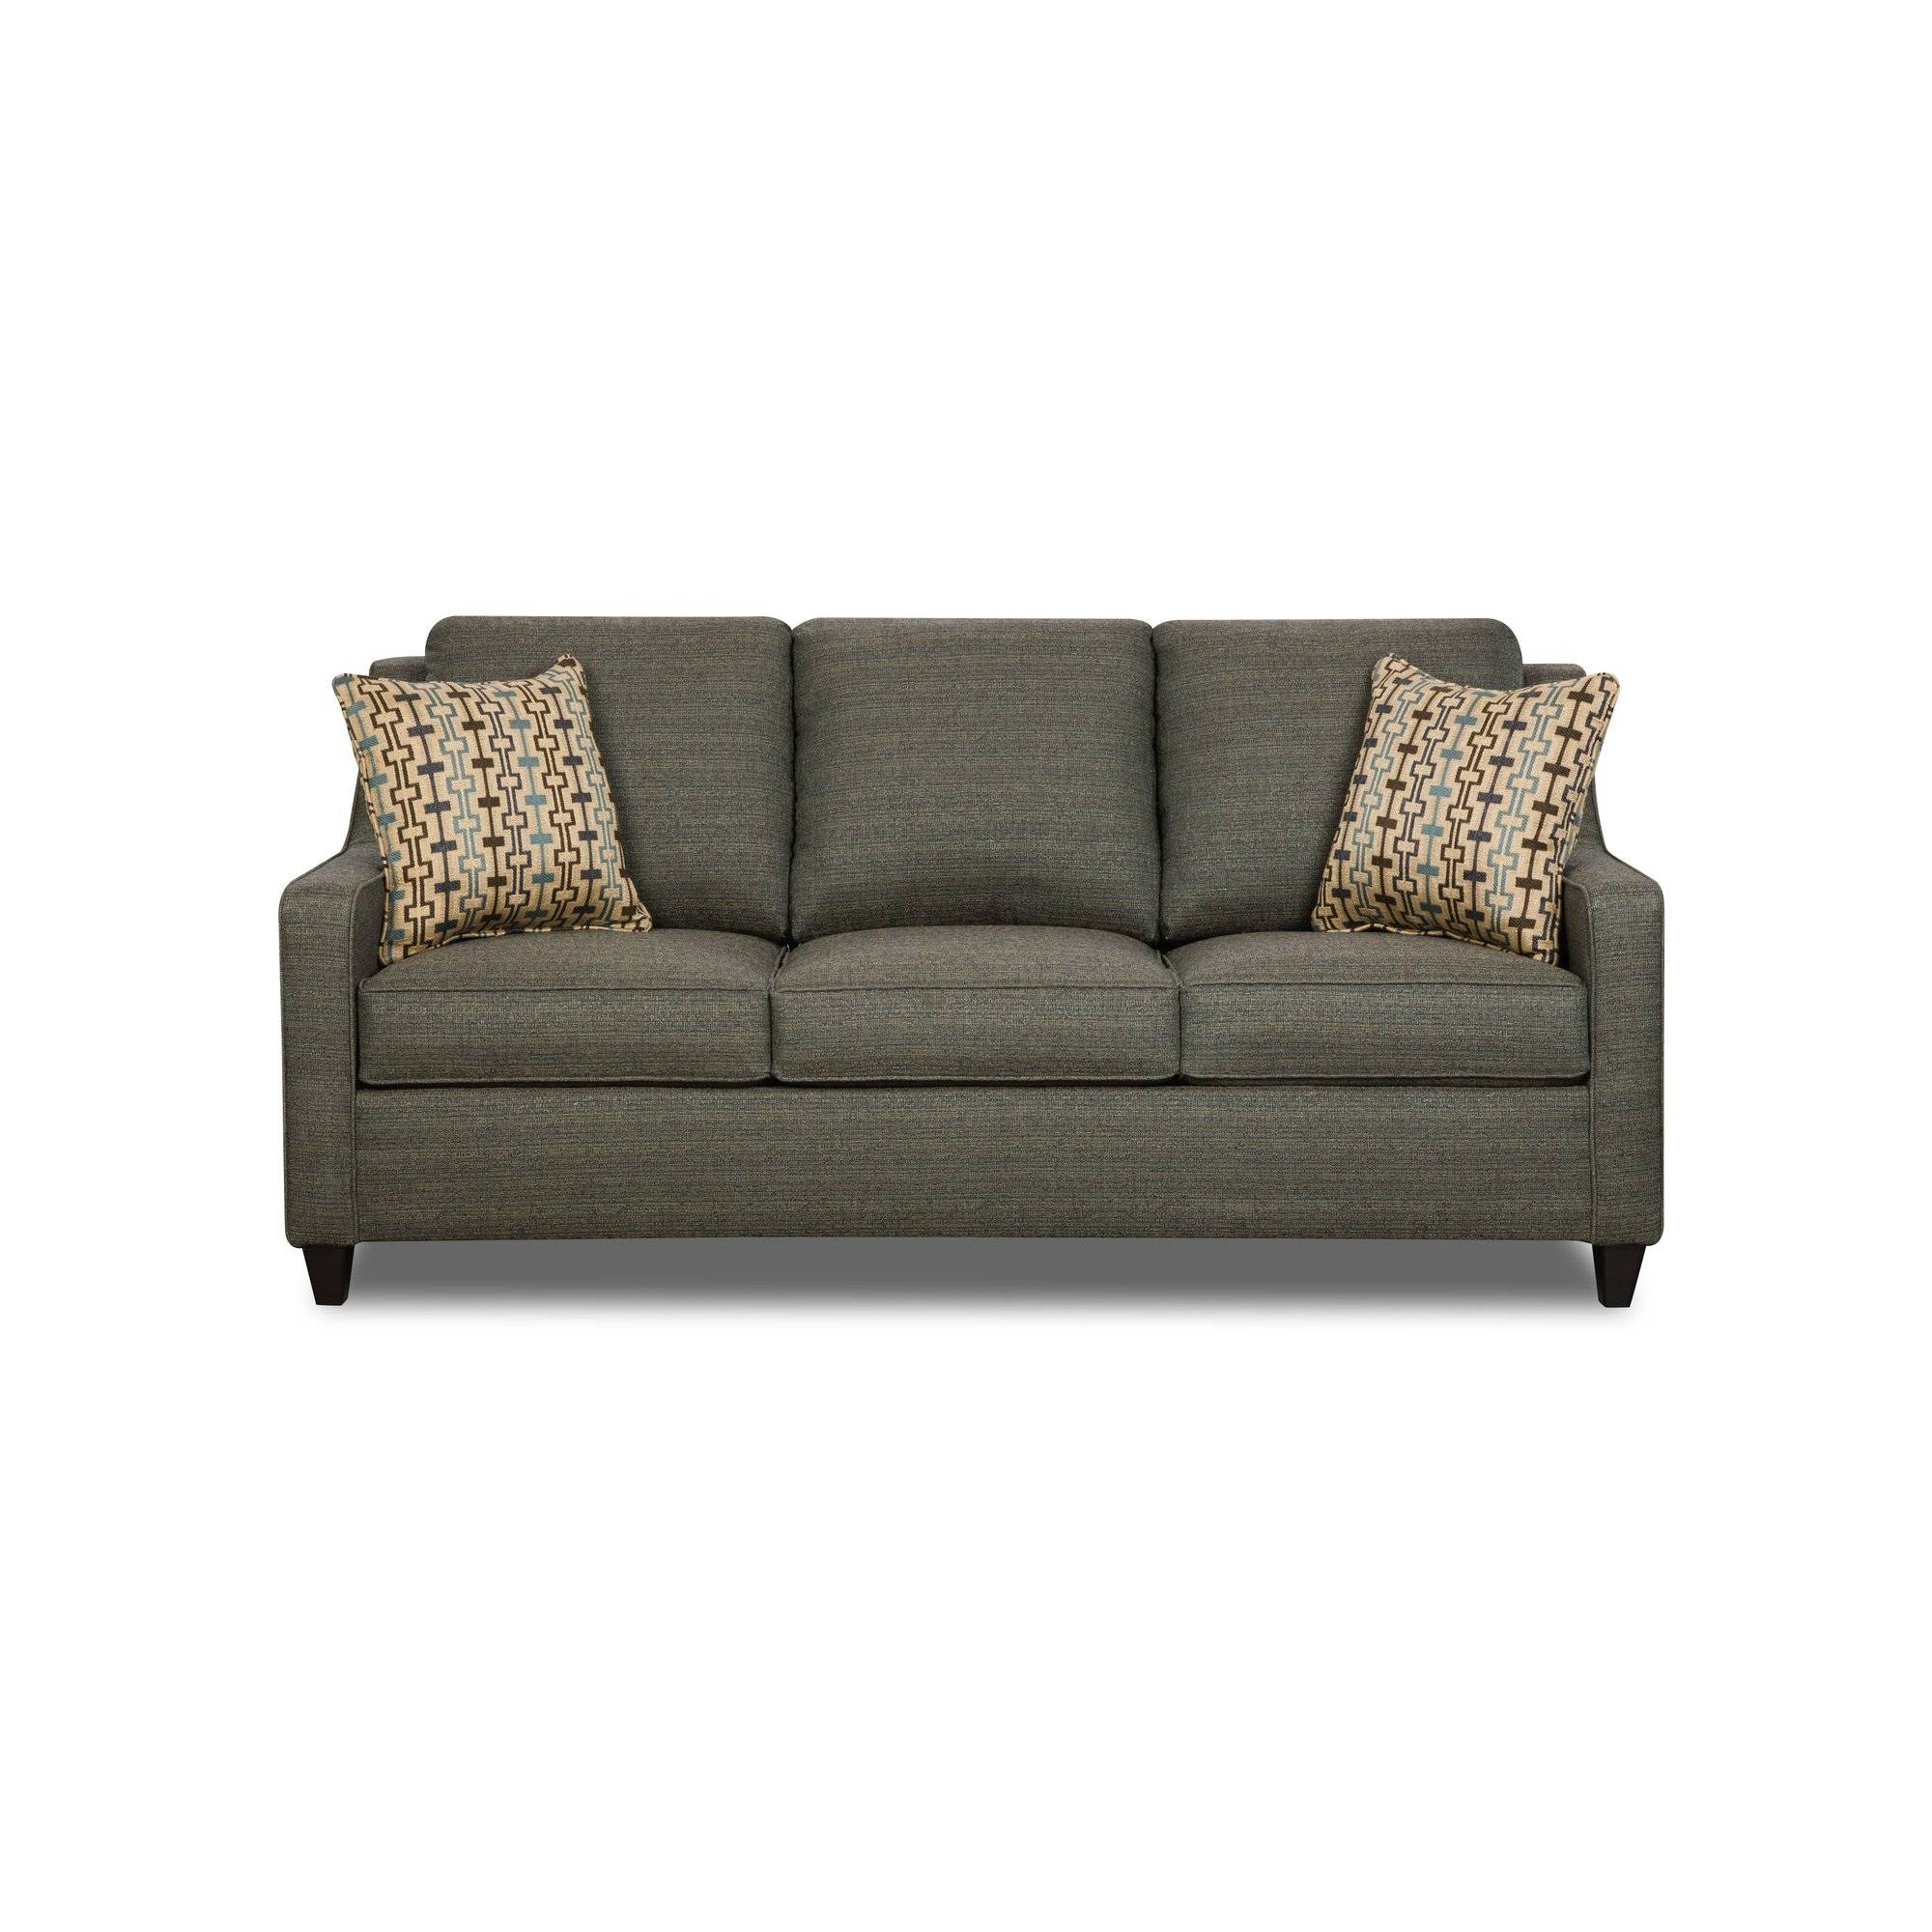 Simmons Beautyrest Sofa Bed Reviews | Centerfieldbar throughout Simmons Sleeper Sofas (Image 9 of 15)